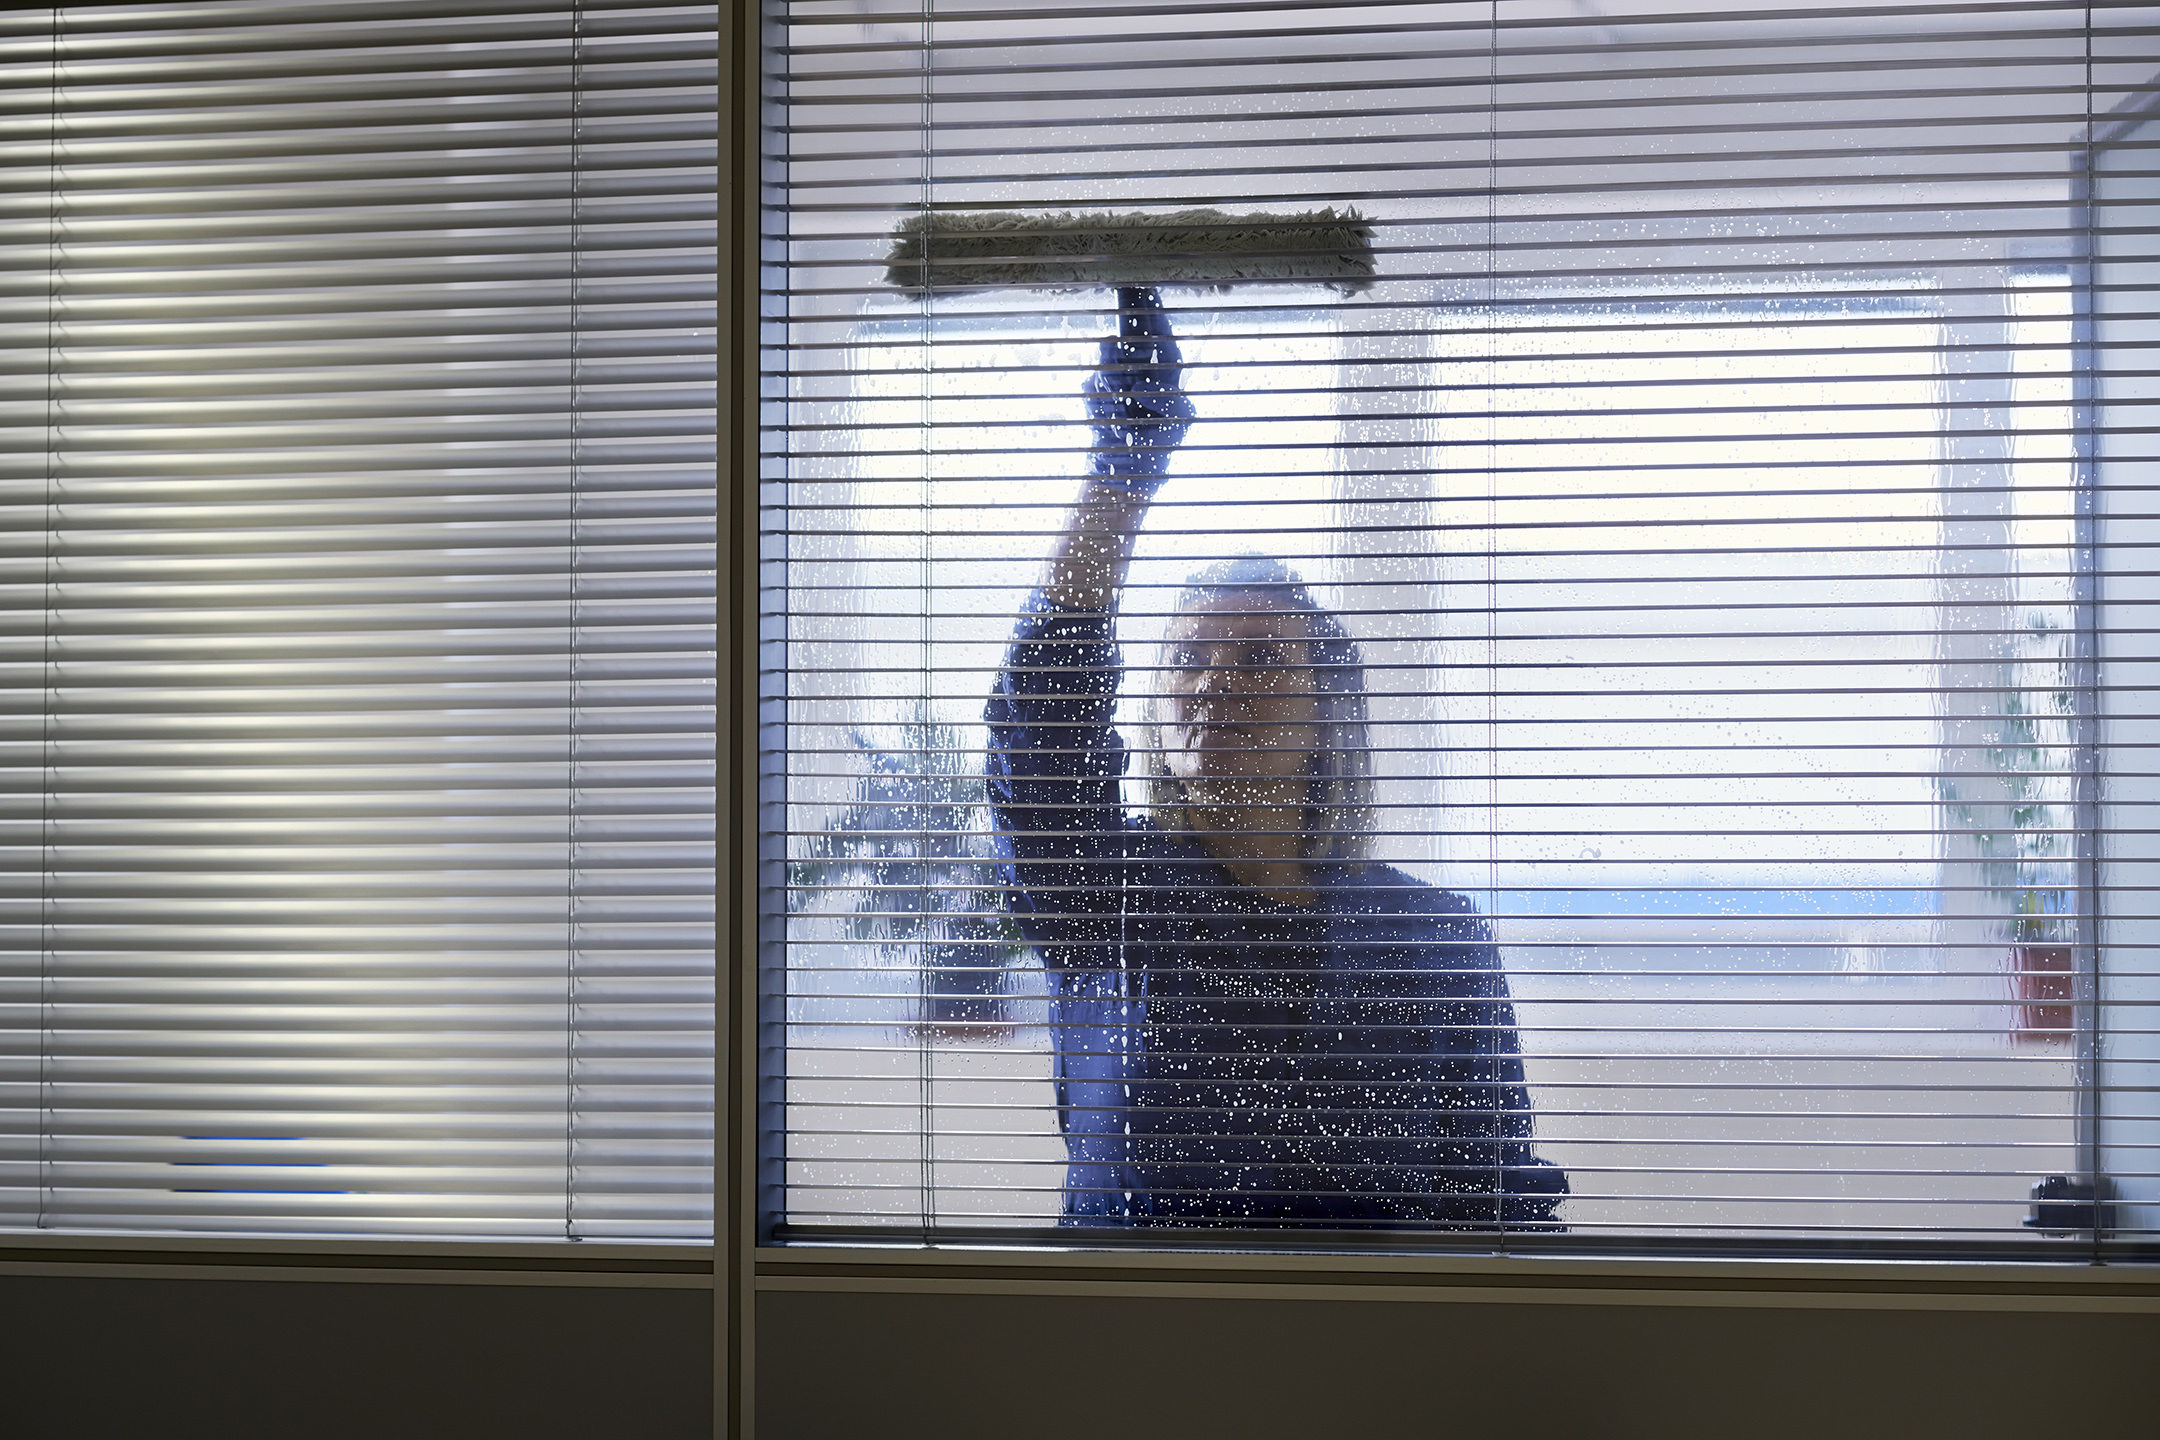 Useful Office Cleaning Tips for Healthy & Clean Workplace